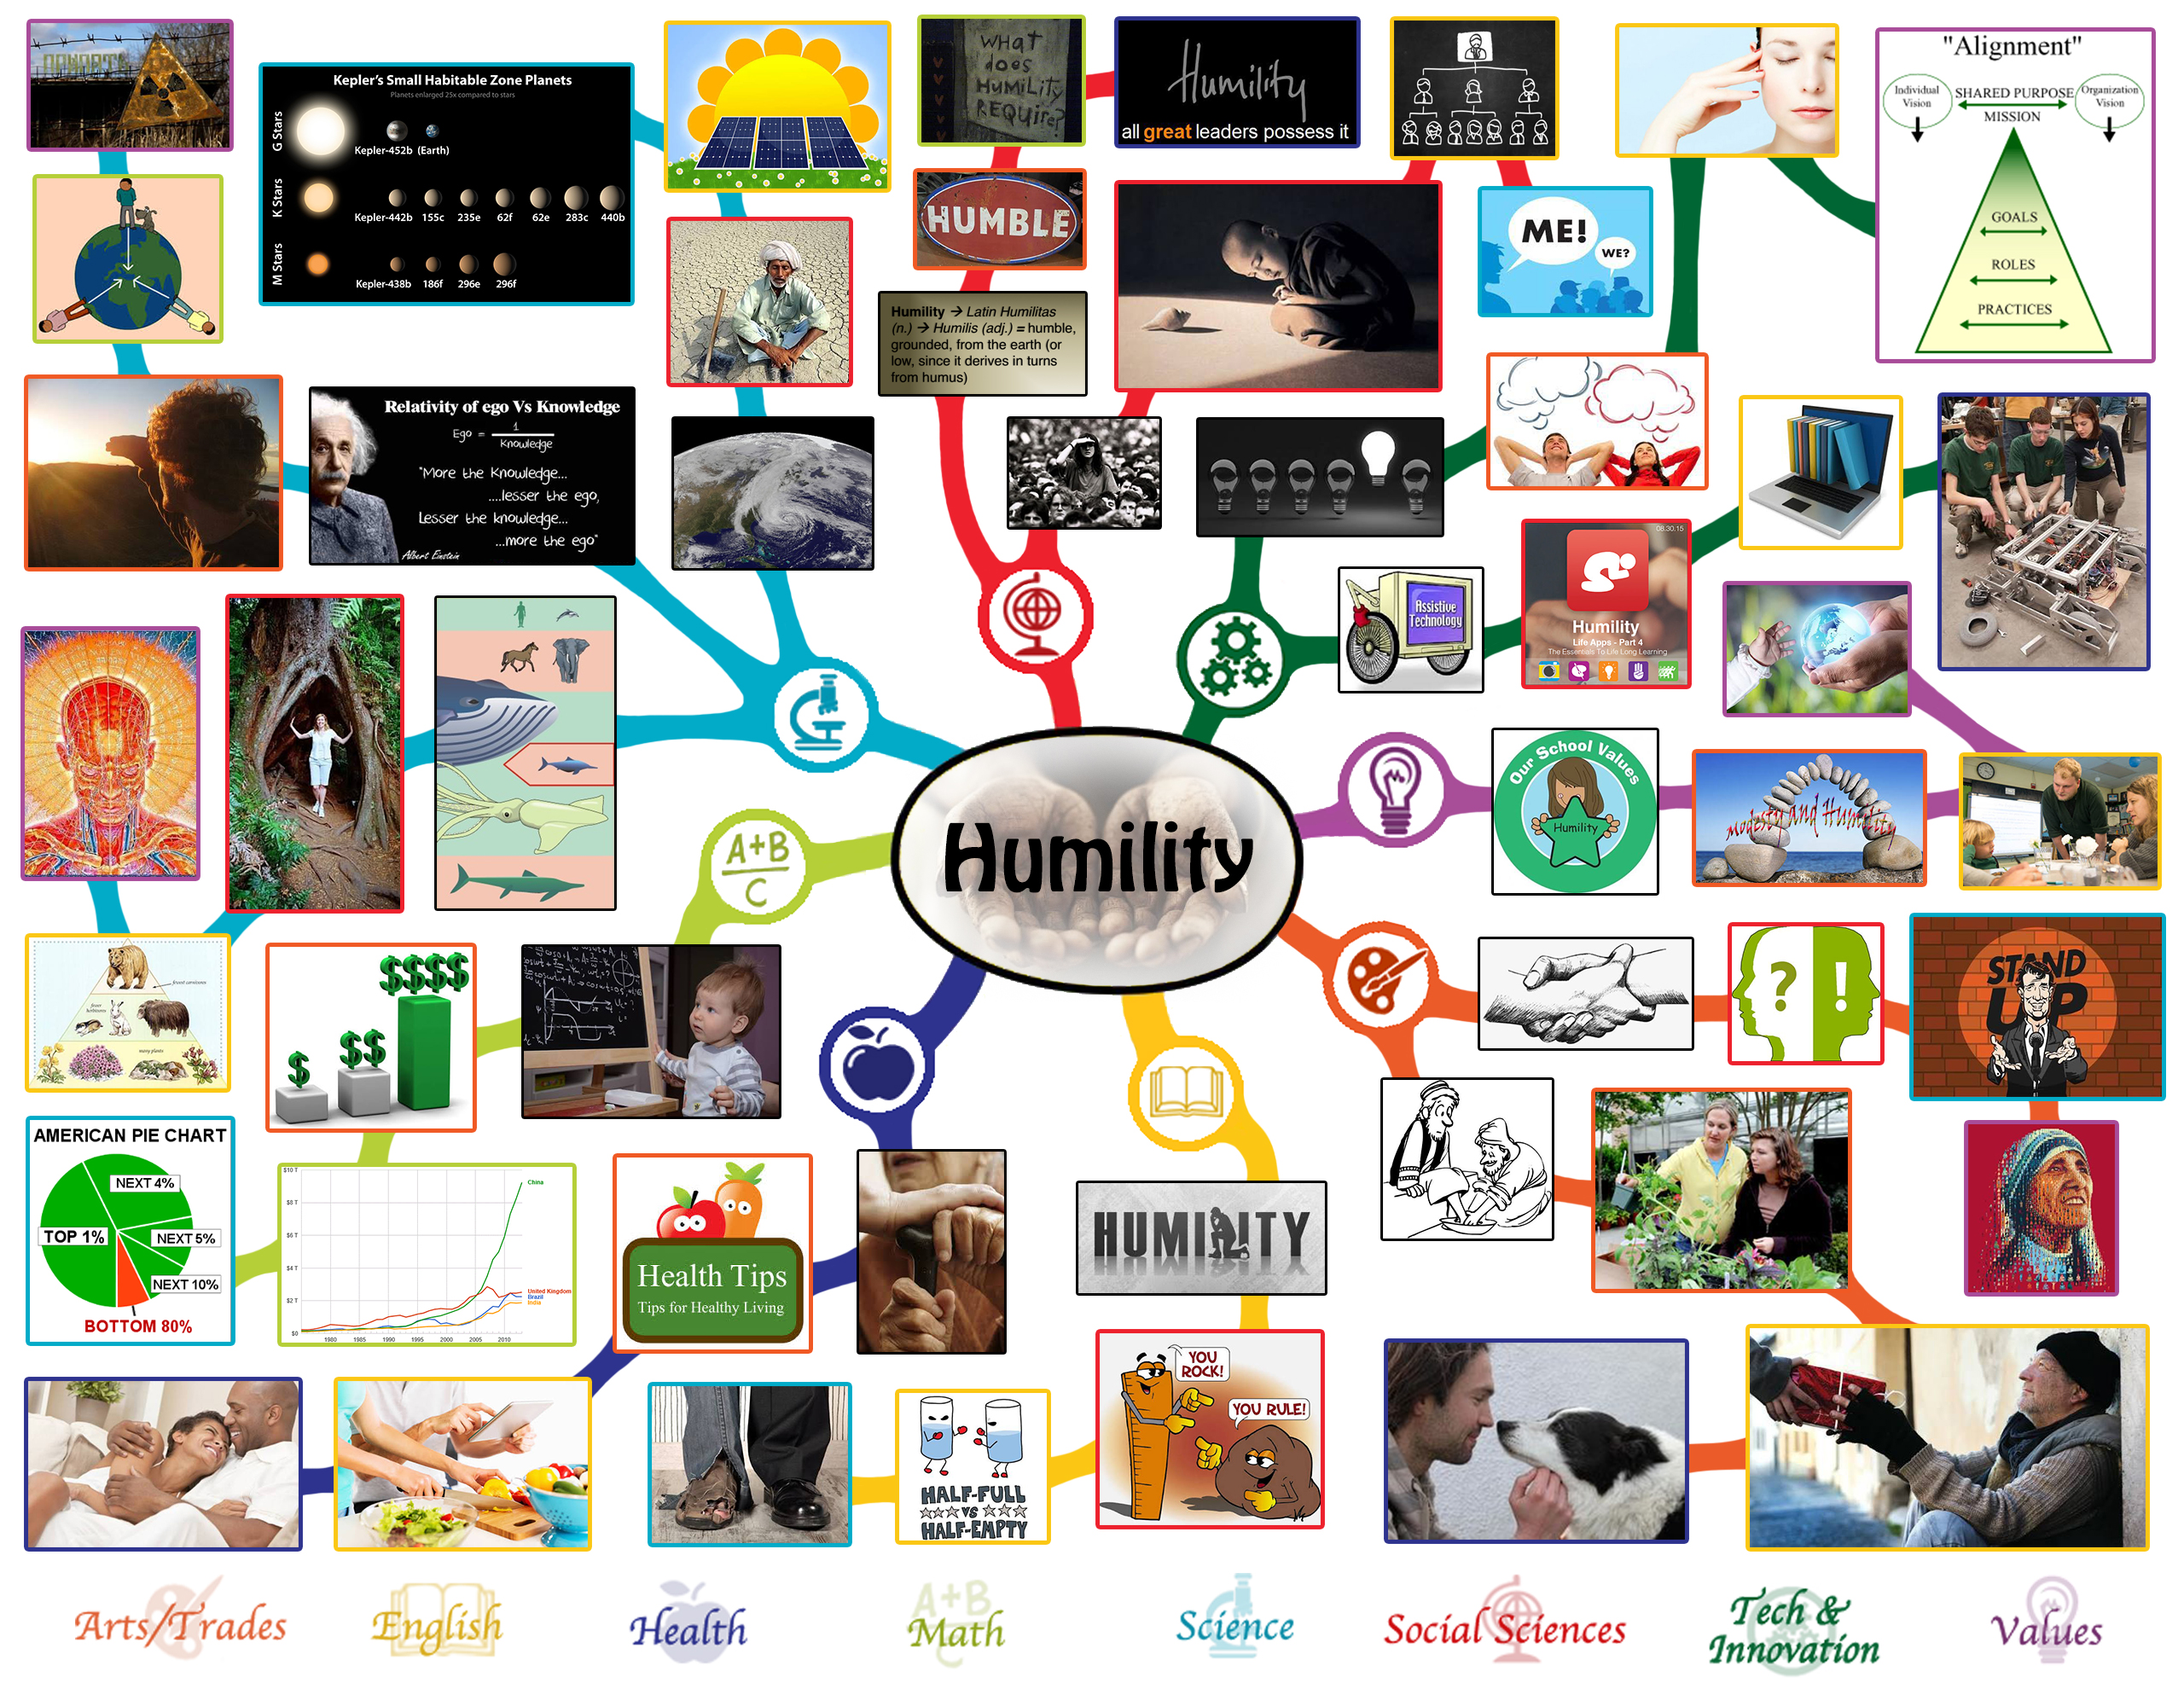 If the world were a village of 100 people lesson plan - Lesson Plan Mindmap For Humility Click To Enlarge